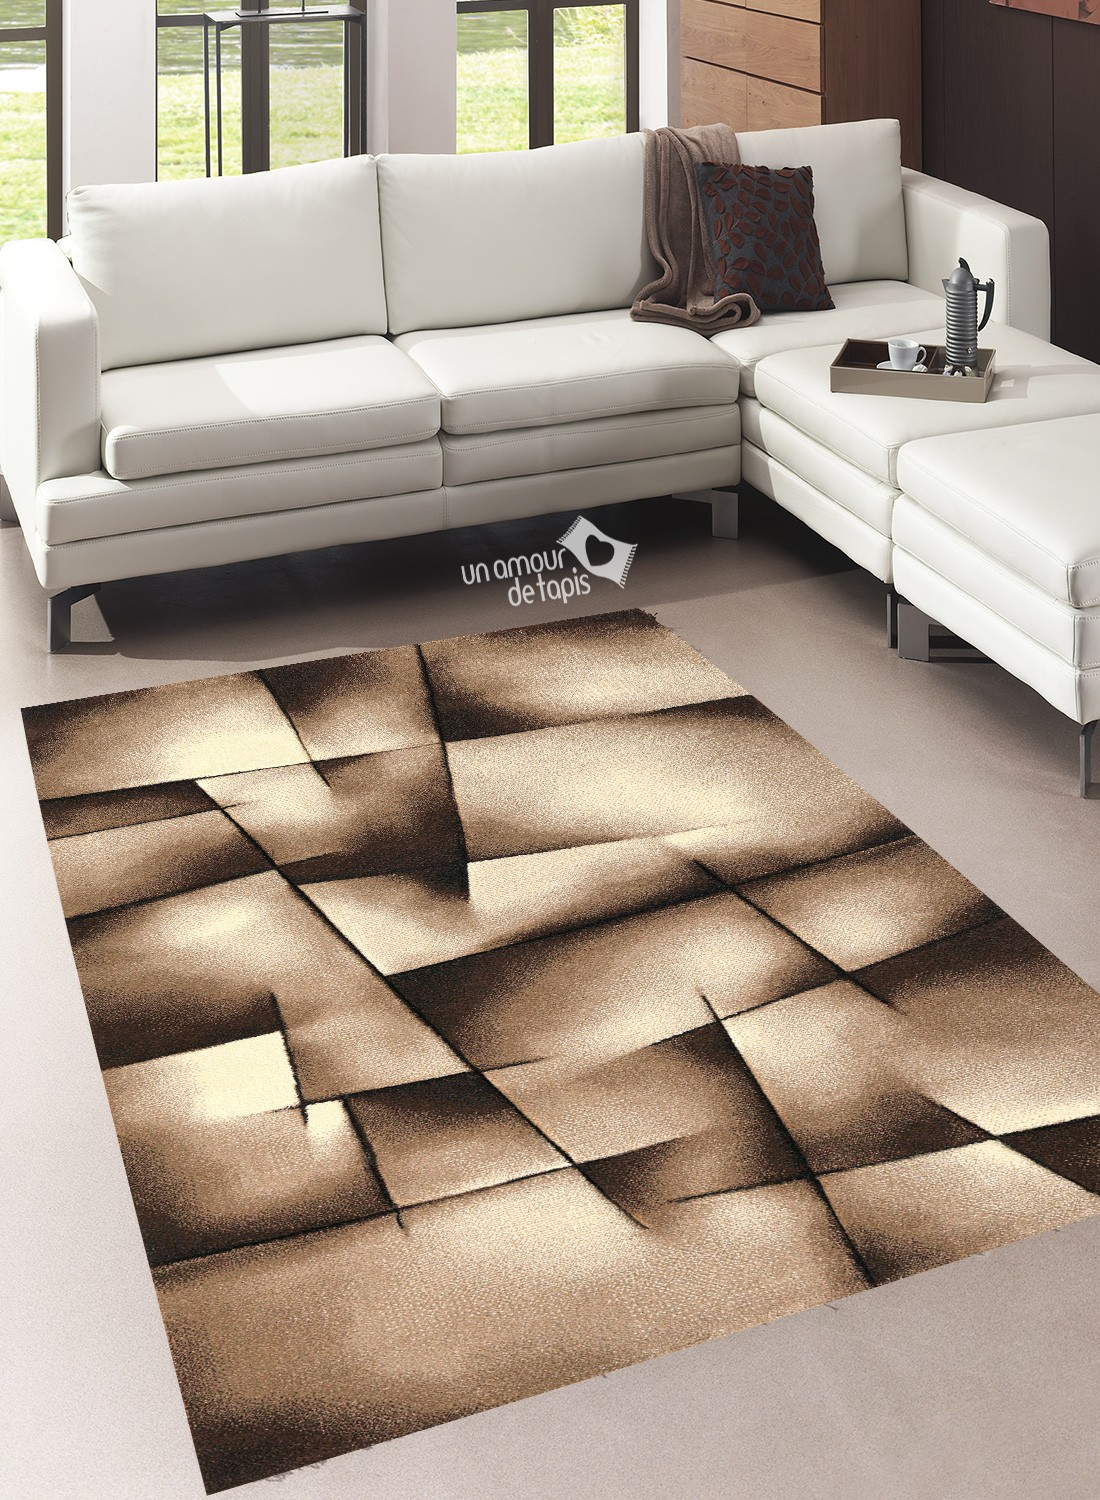 Tapis De Salon Beige Et Marron Novocom Top